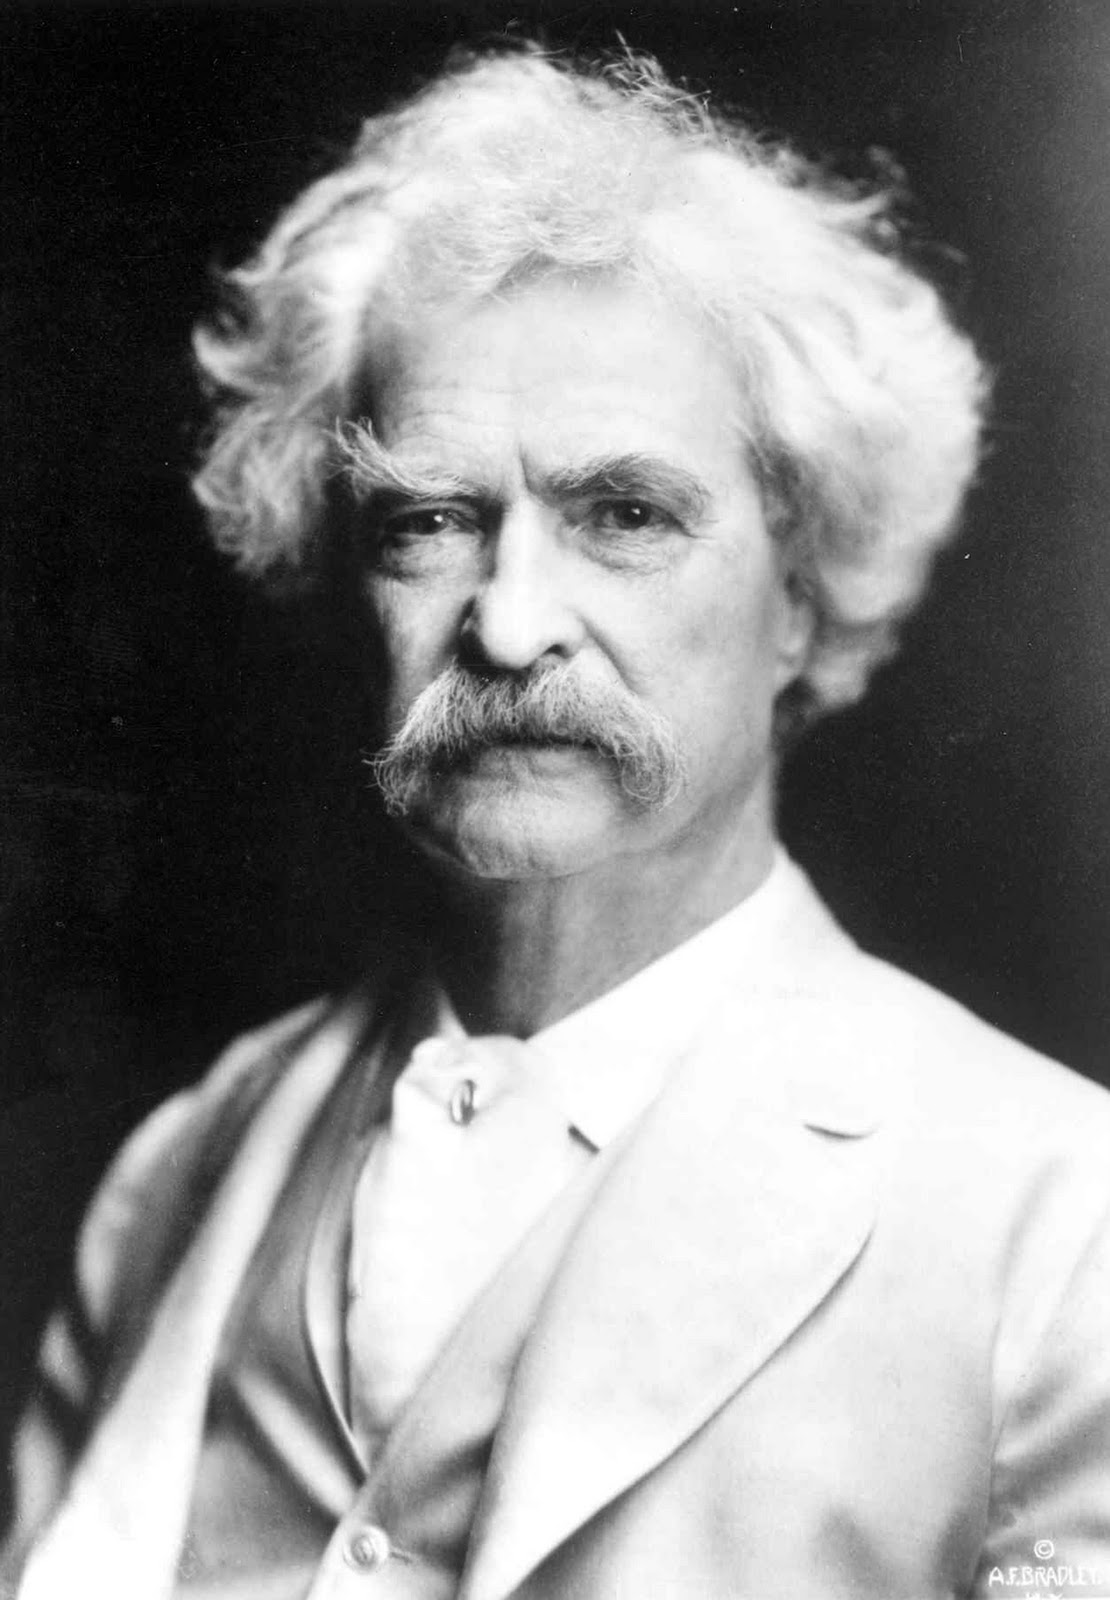 twain essay mark twain essays philosophies of men mingled  philosophies of men mingled scripture mark twain and god the mark twain and god the almighty report sample essay